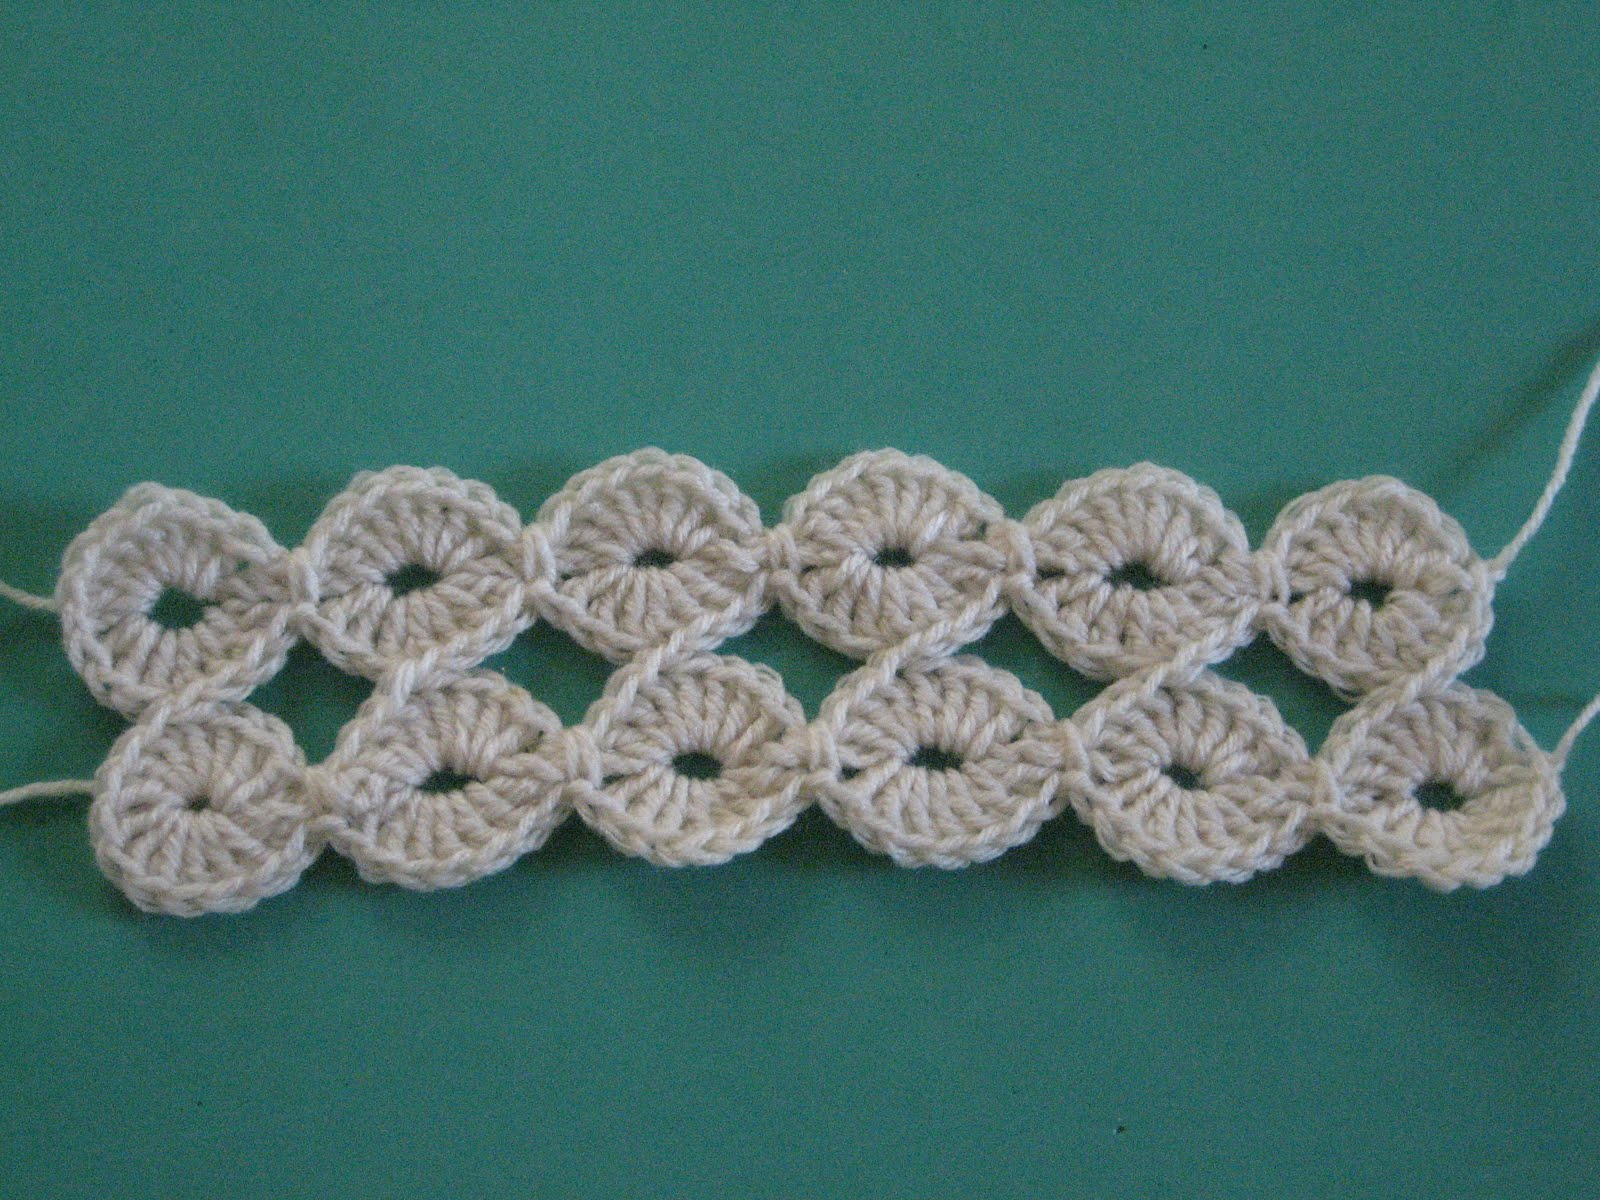 Yarn Companies Free Crochet Patterns : Crochet Pattern Companies: Crocheting Pattern Companies, Crochet